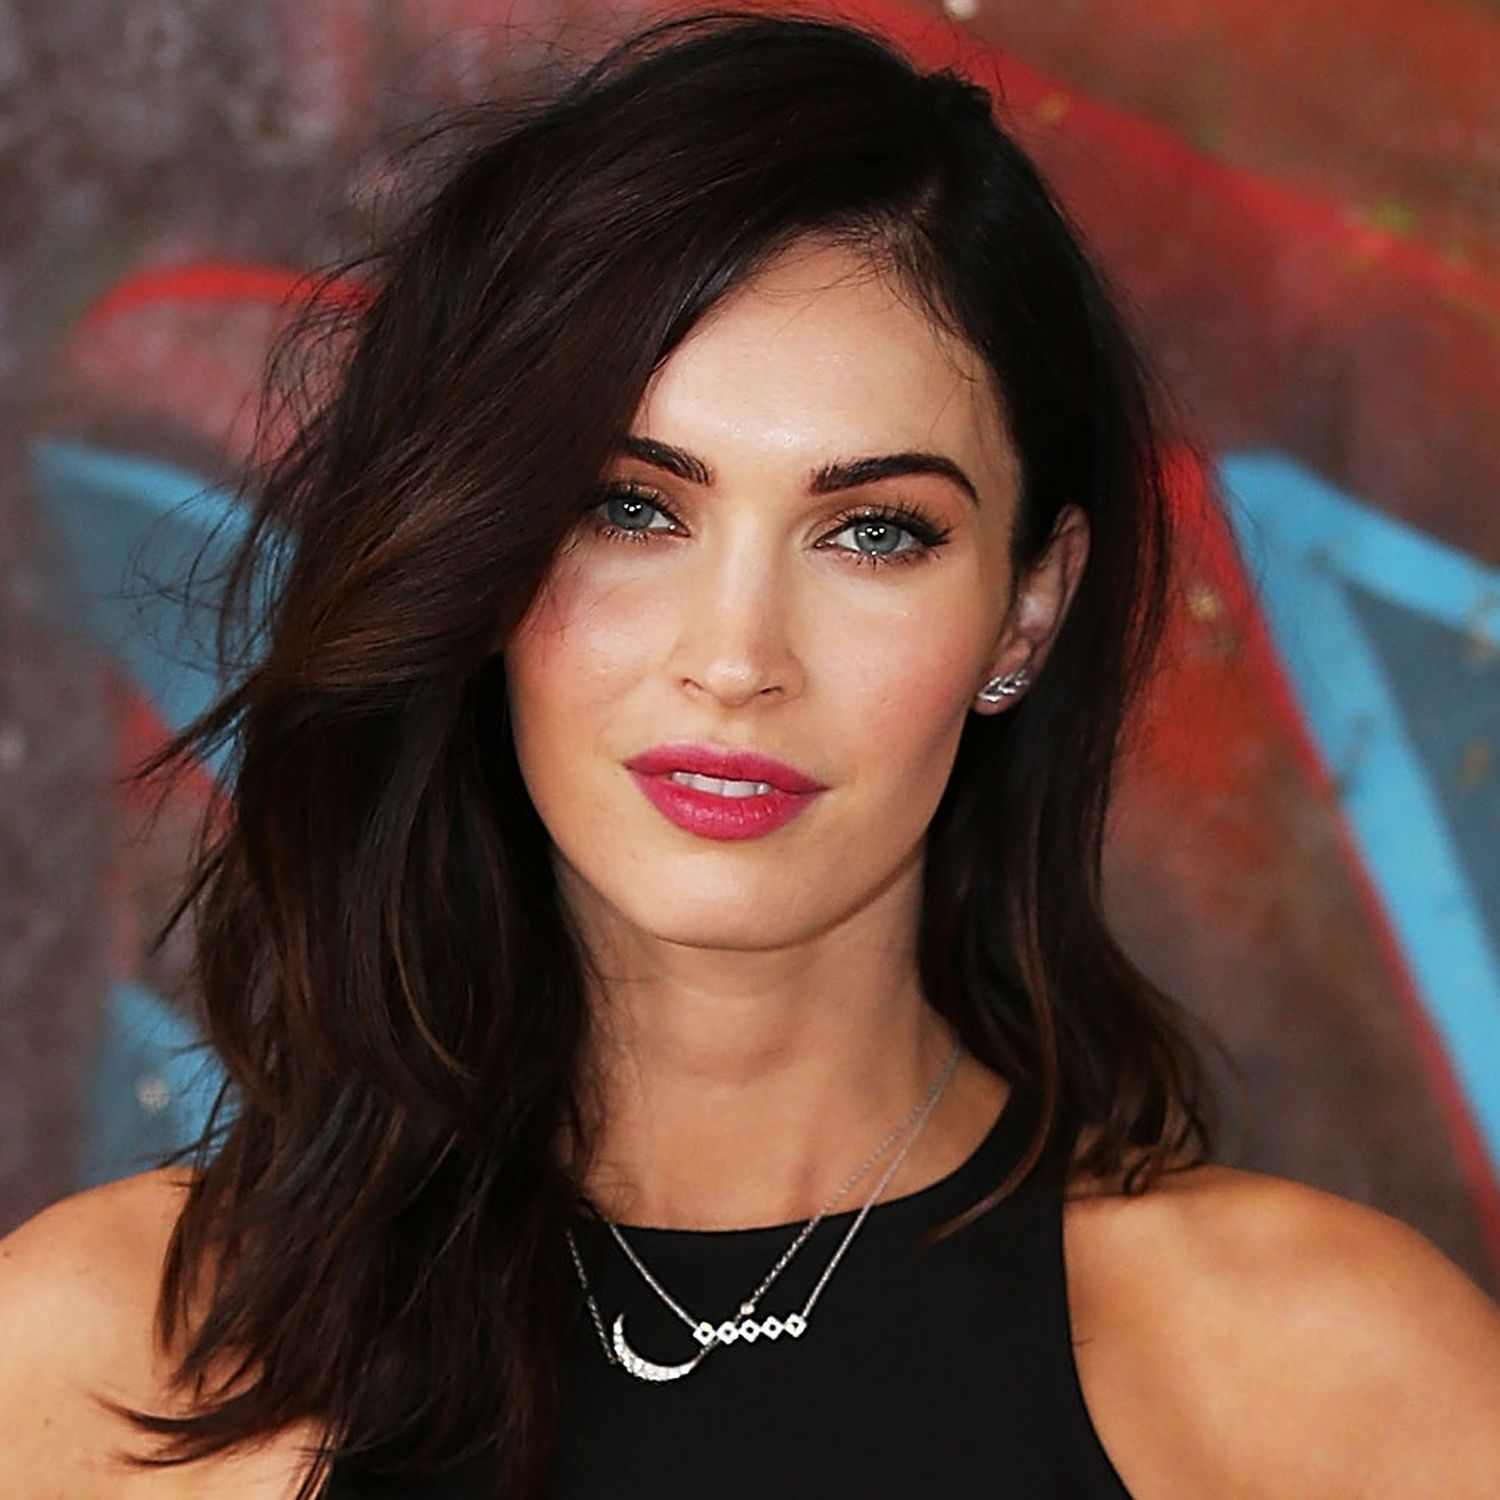 megan fox haircut - lob hairstyle